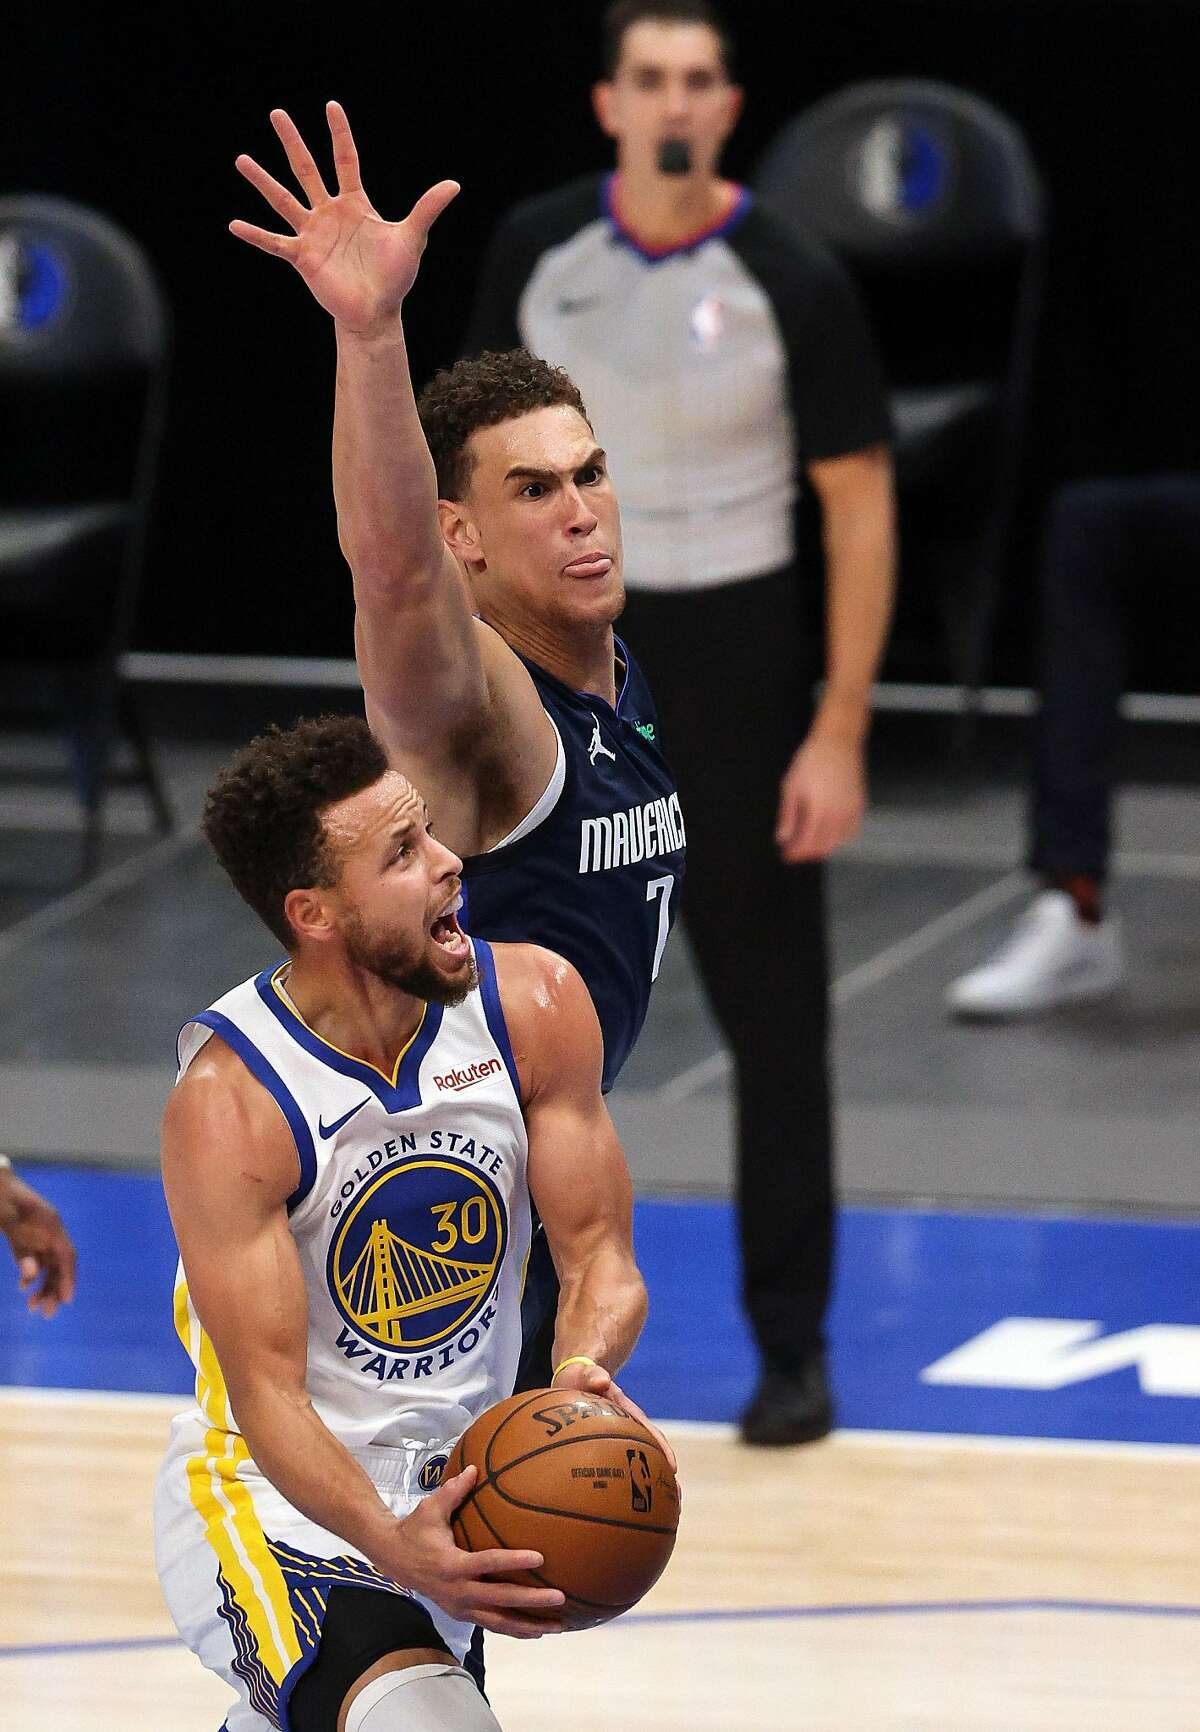 Stephen Curry maneuvers past the Mavericks' Dwight Powell in the second quarter. Curry made 11 3-point shots in the game.